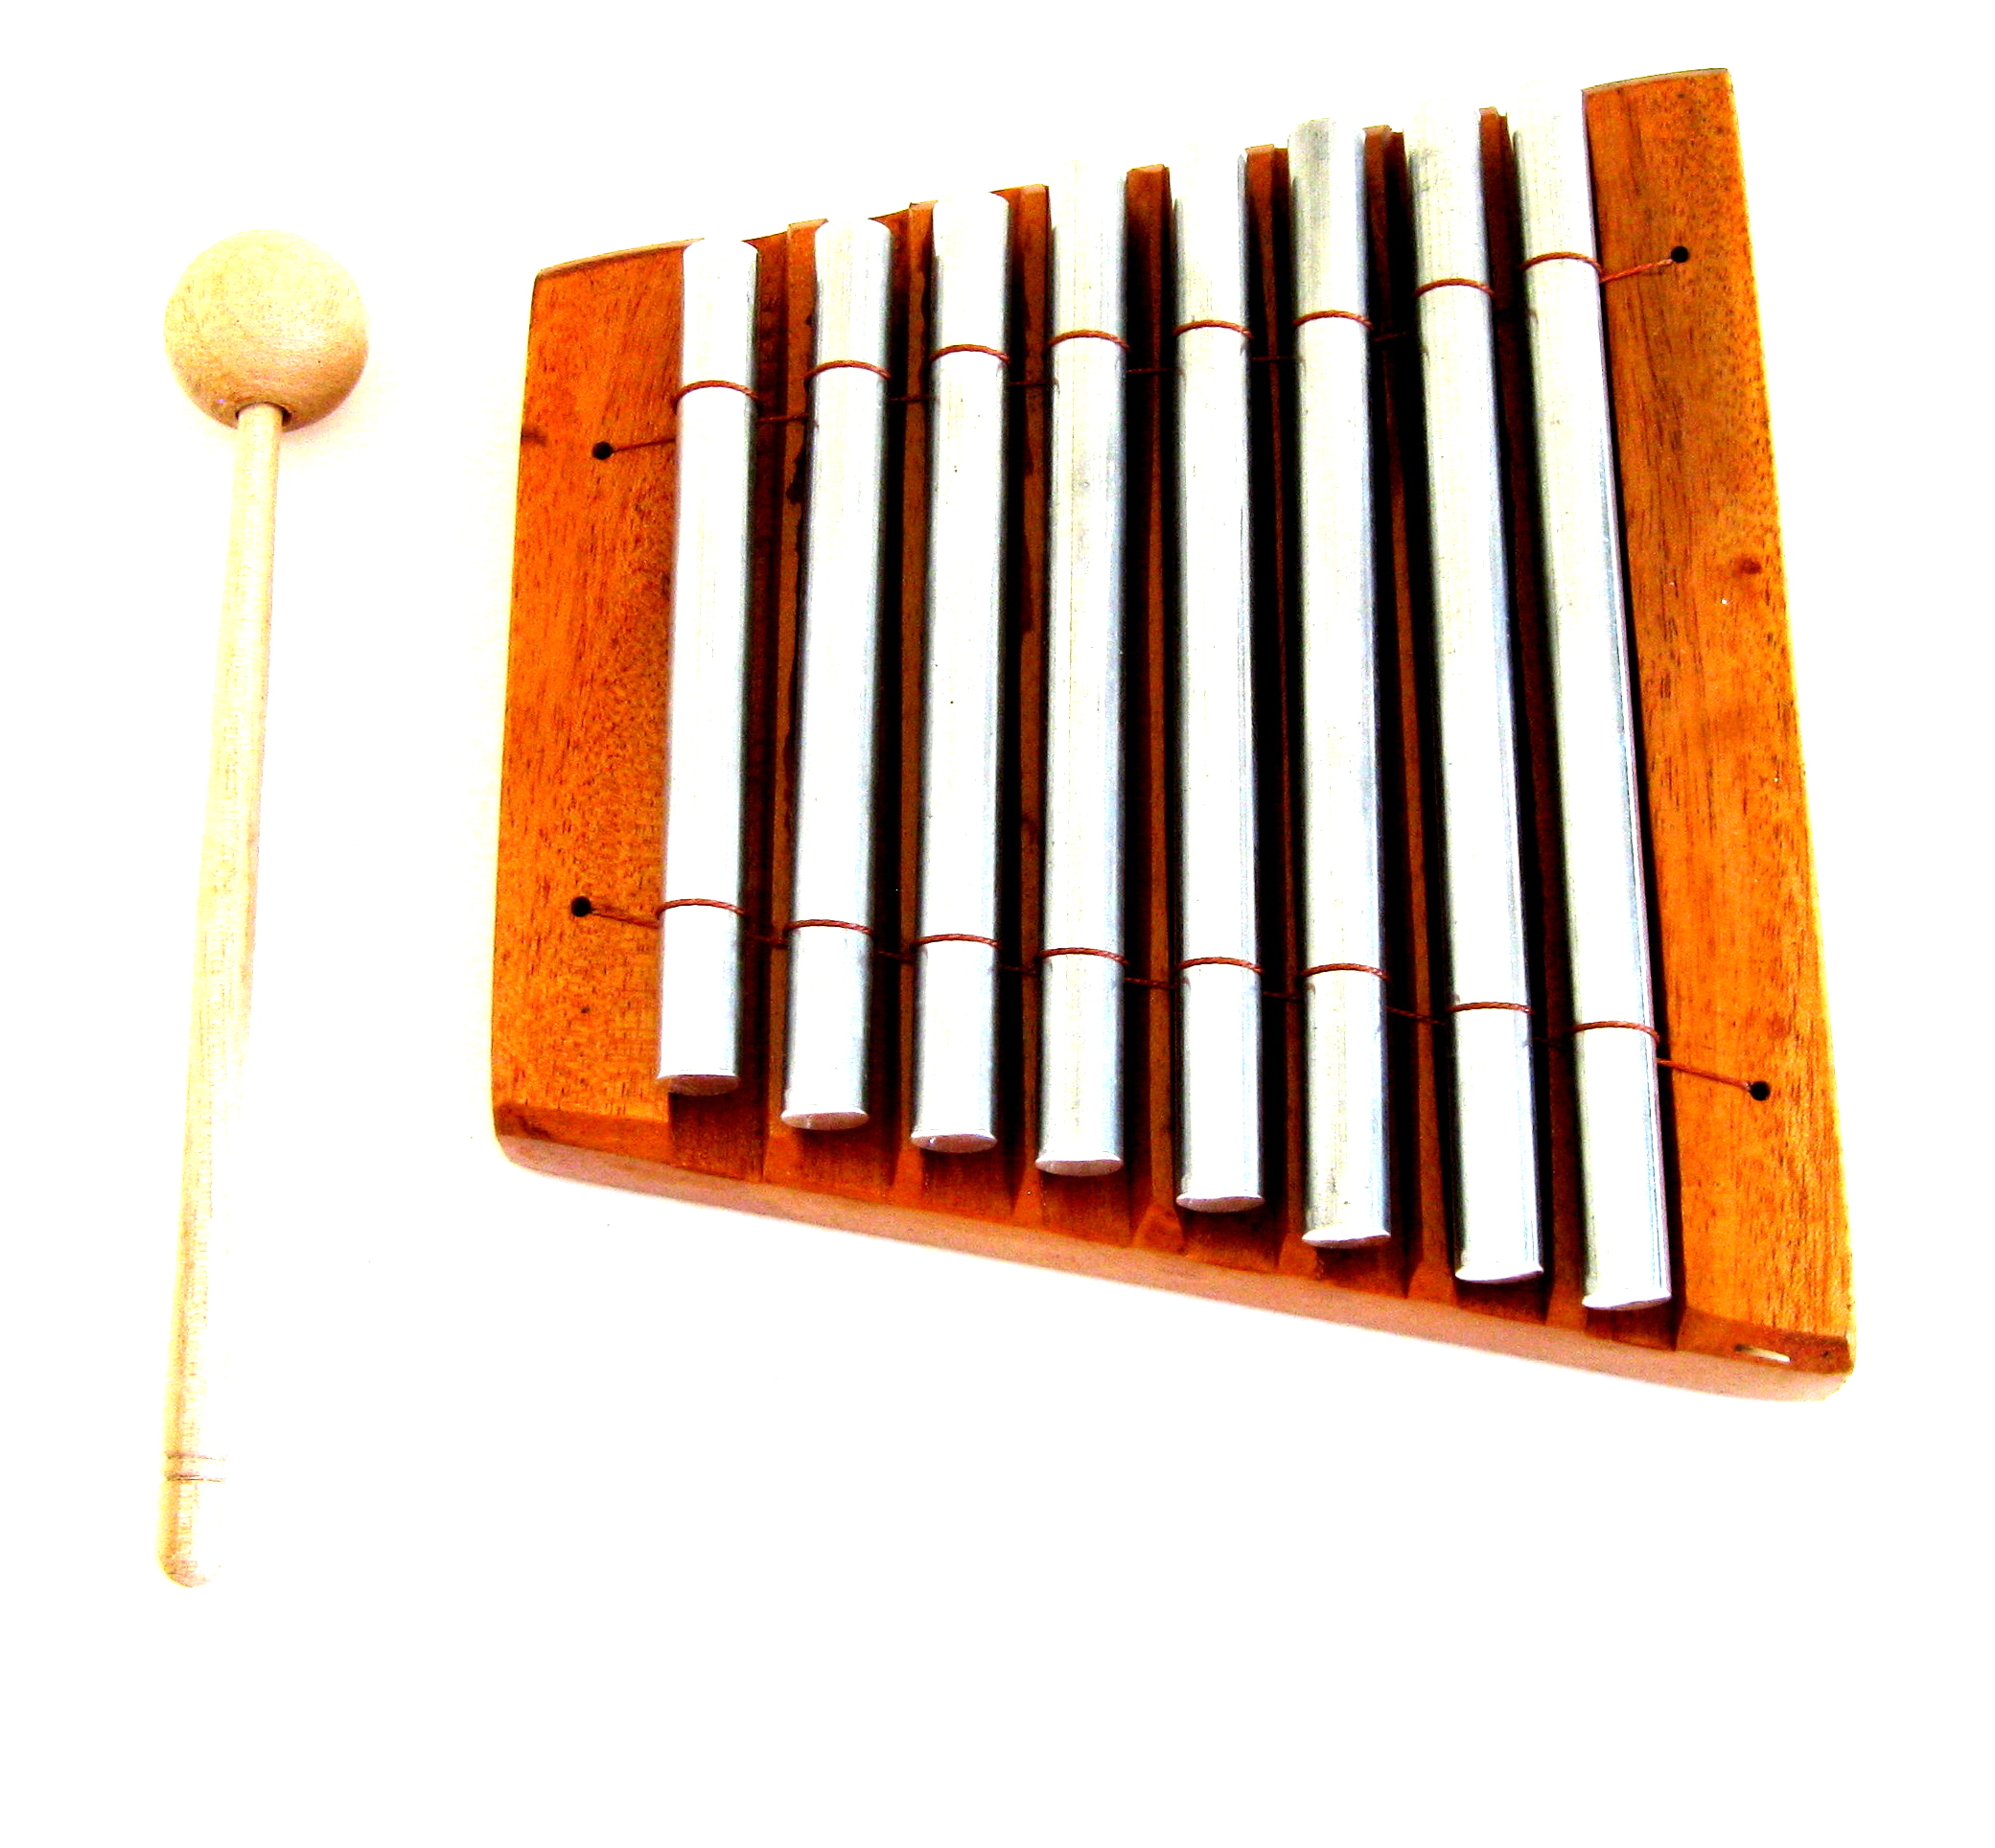 Meditation Chime Energy Chime Wood Percussion Chakra Chime, 8 Bars, Xylophone PROFESSIONAL... by